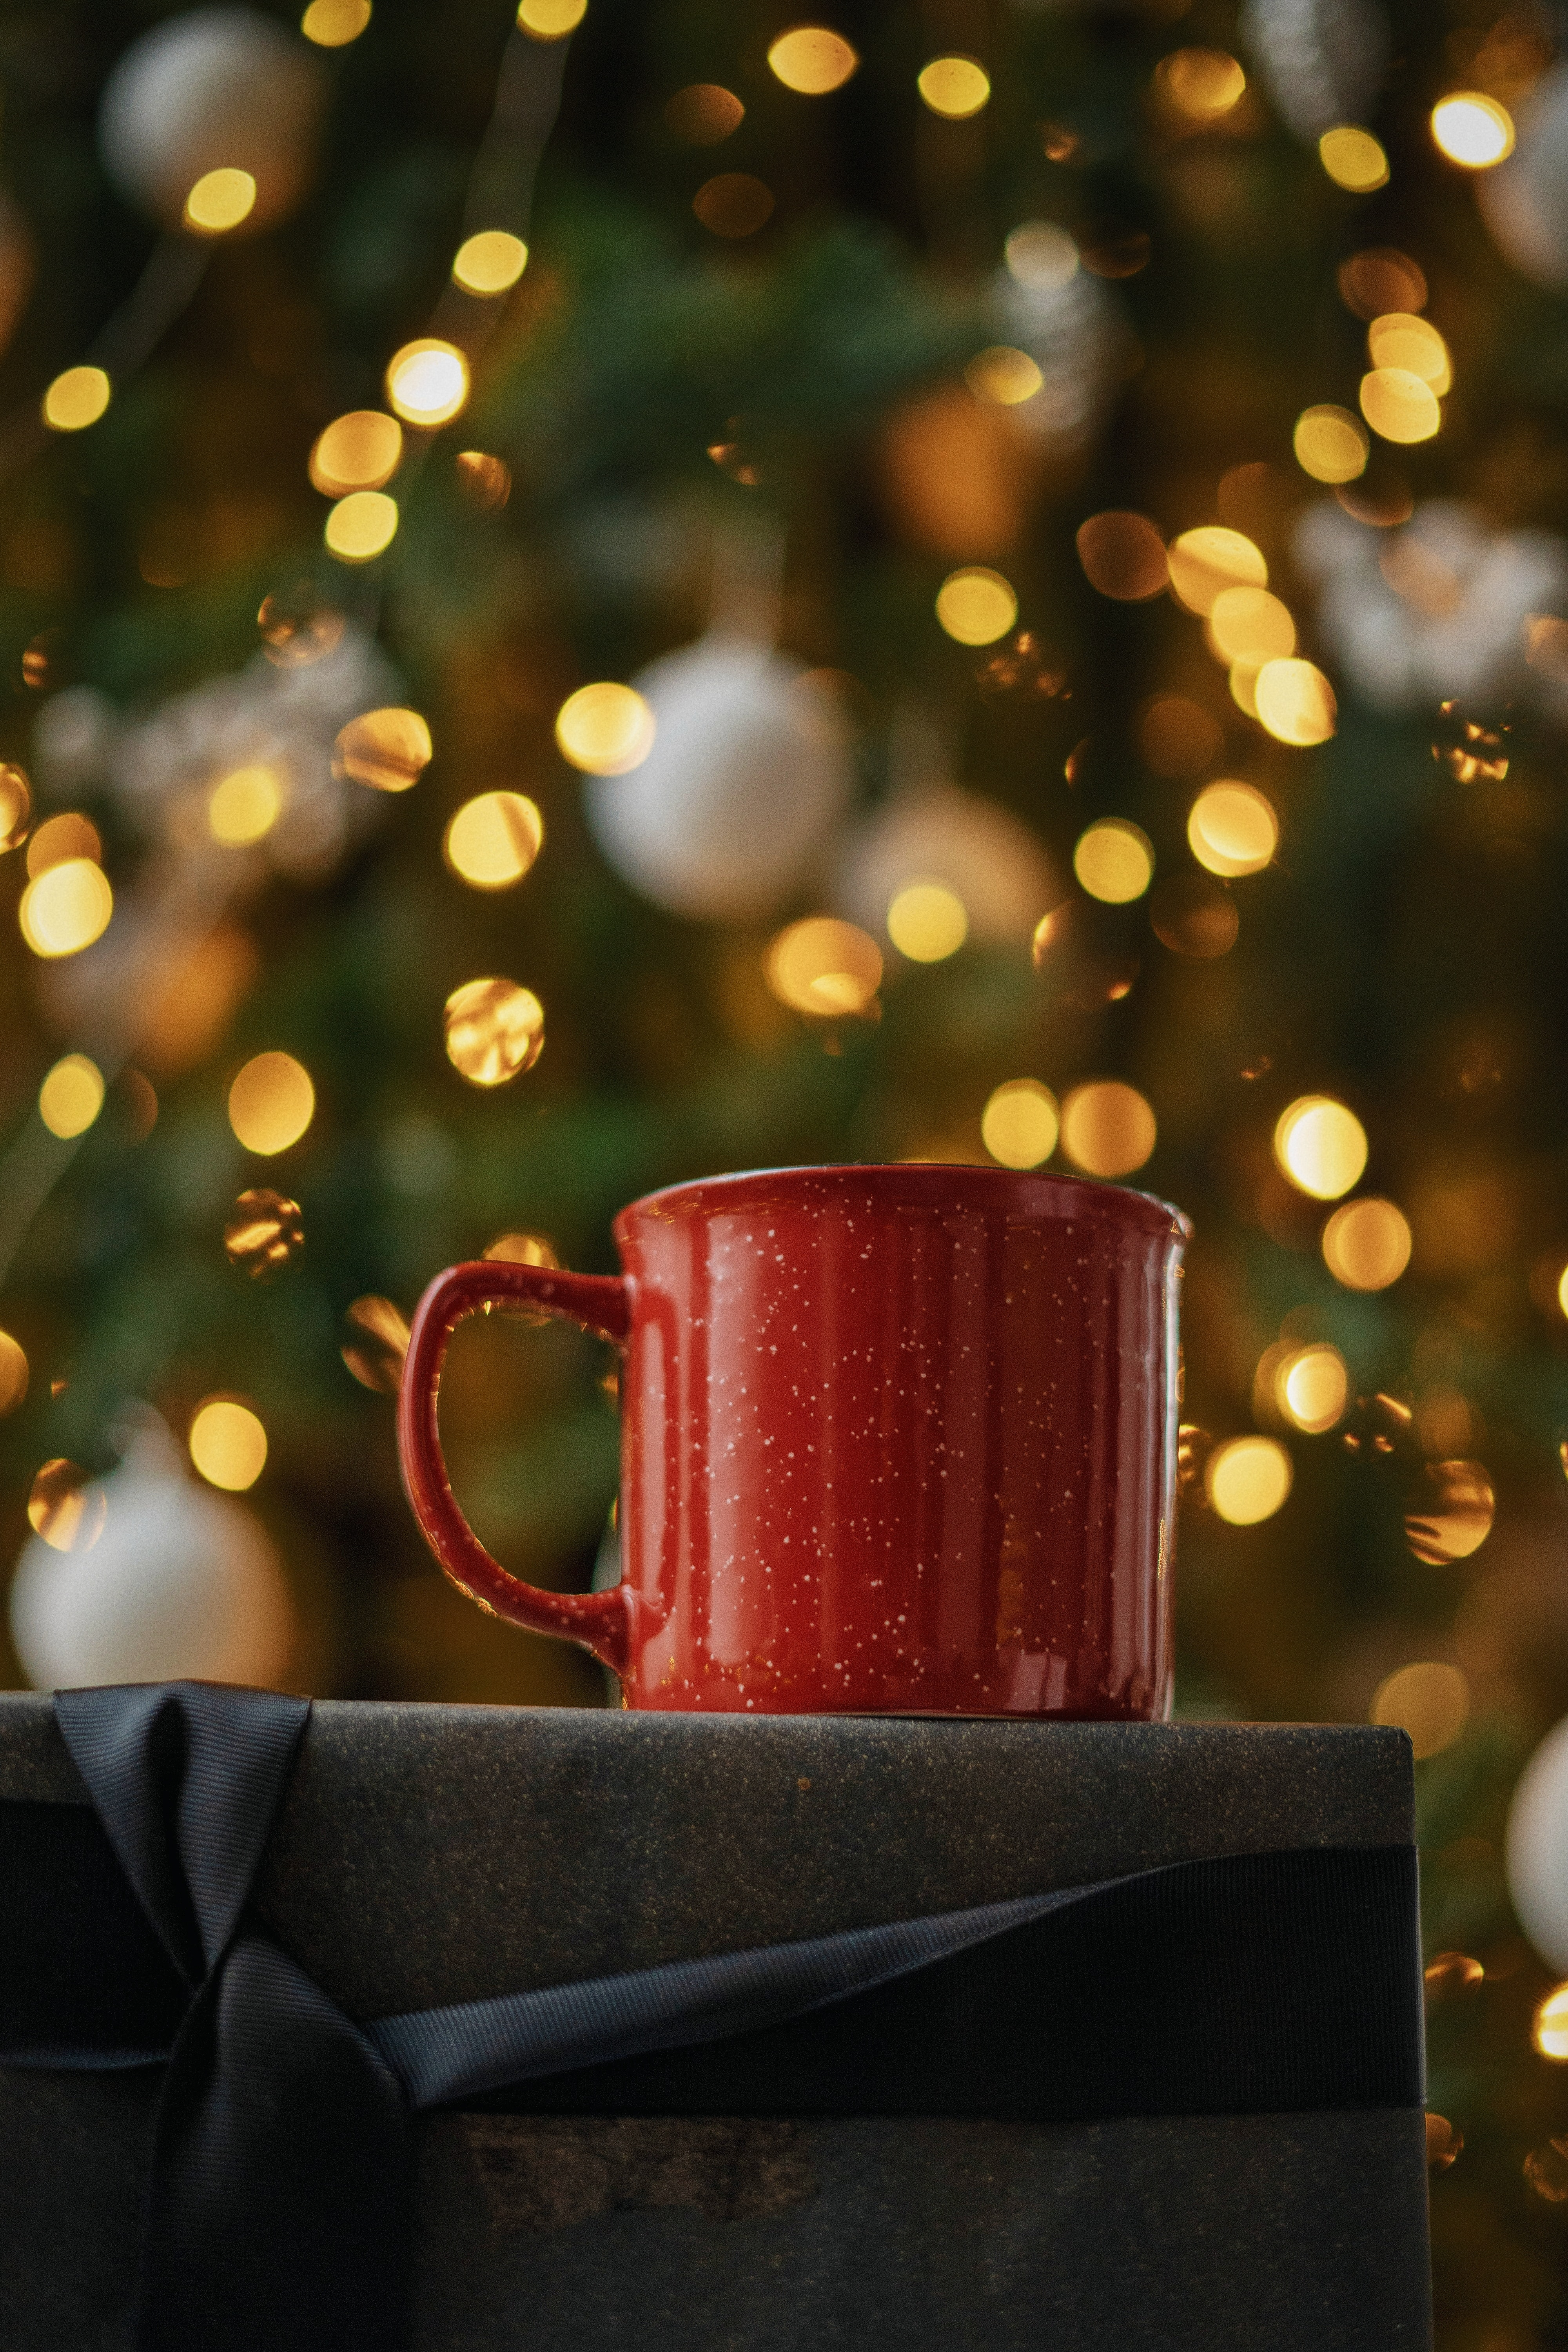 152932 download wallpaper Miscellanea, Miscellaneous, Cup, Mug, Box, Lights, Glare, Bokeh, Boquet screensavers and pictures for free